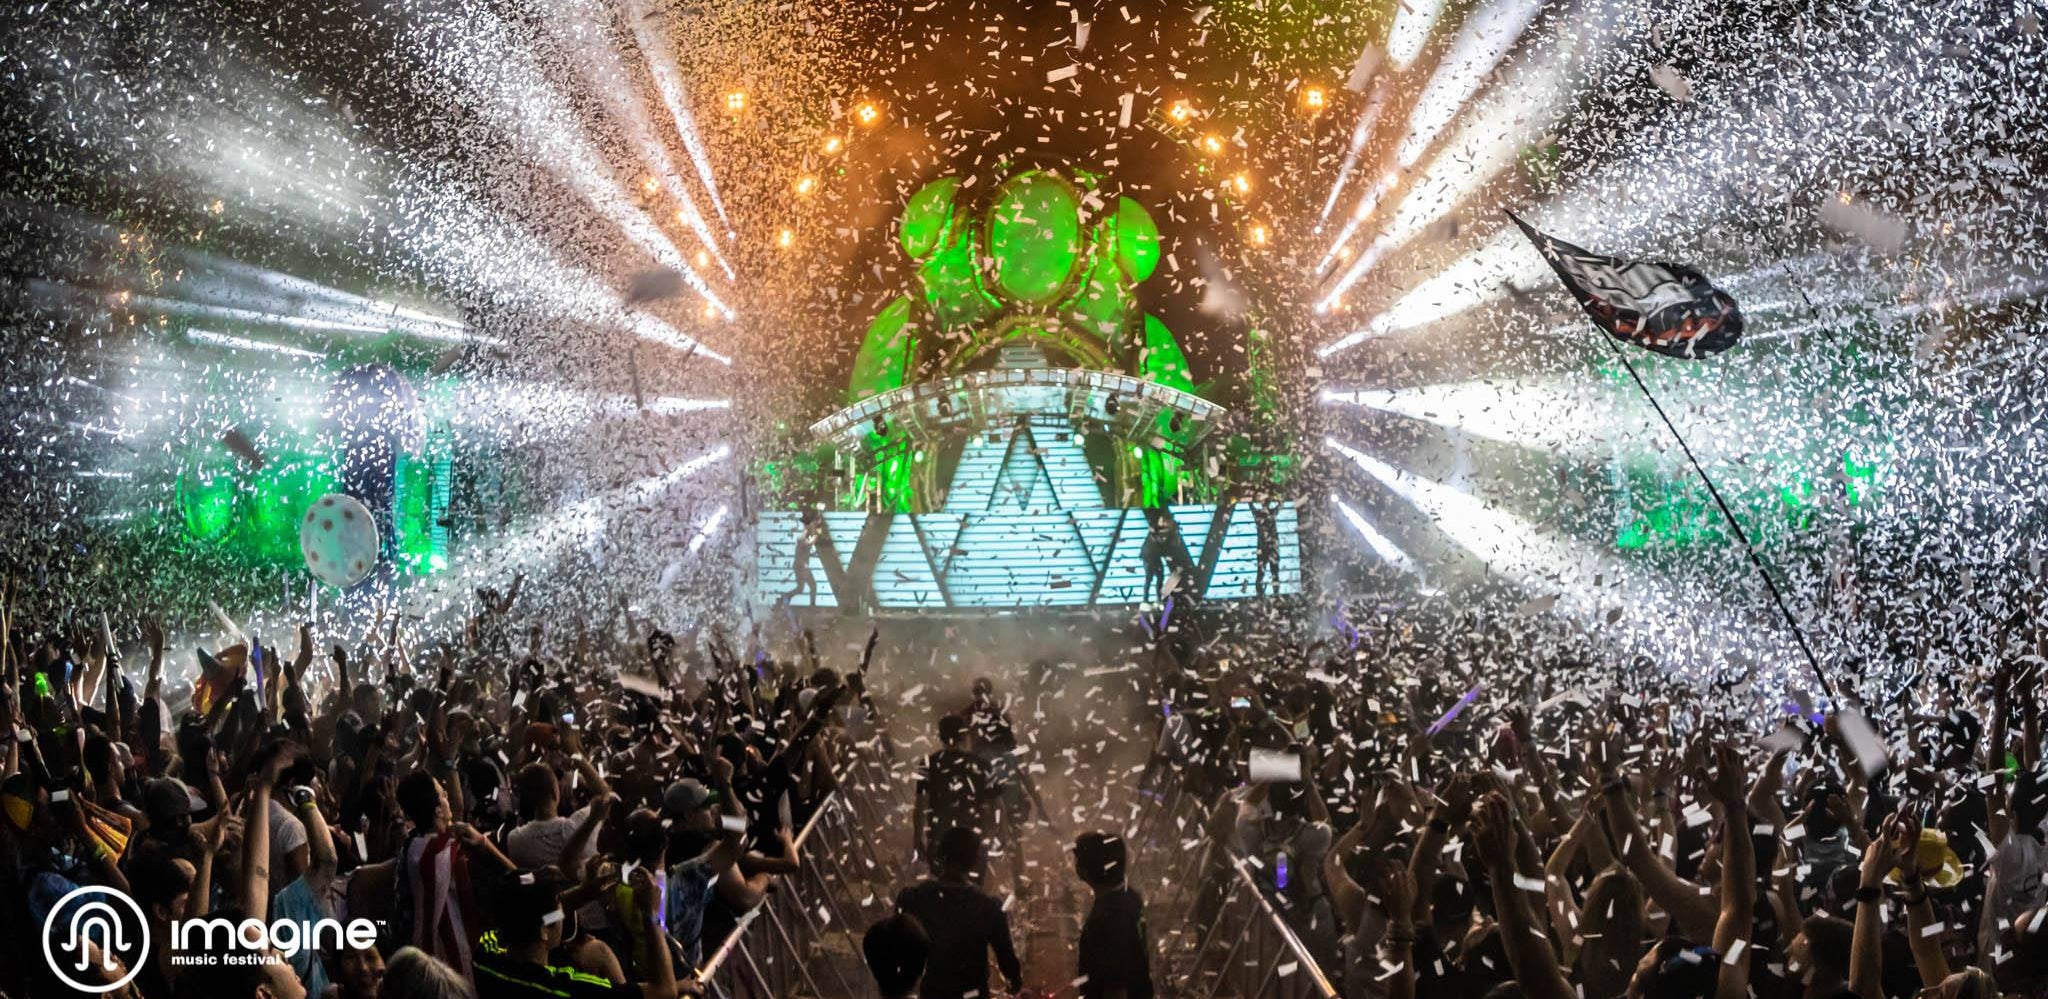 10 Things We Loved About Imagine Festival 2018 | iEDM - On Blast